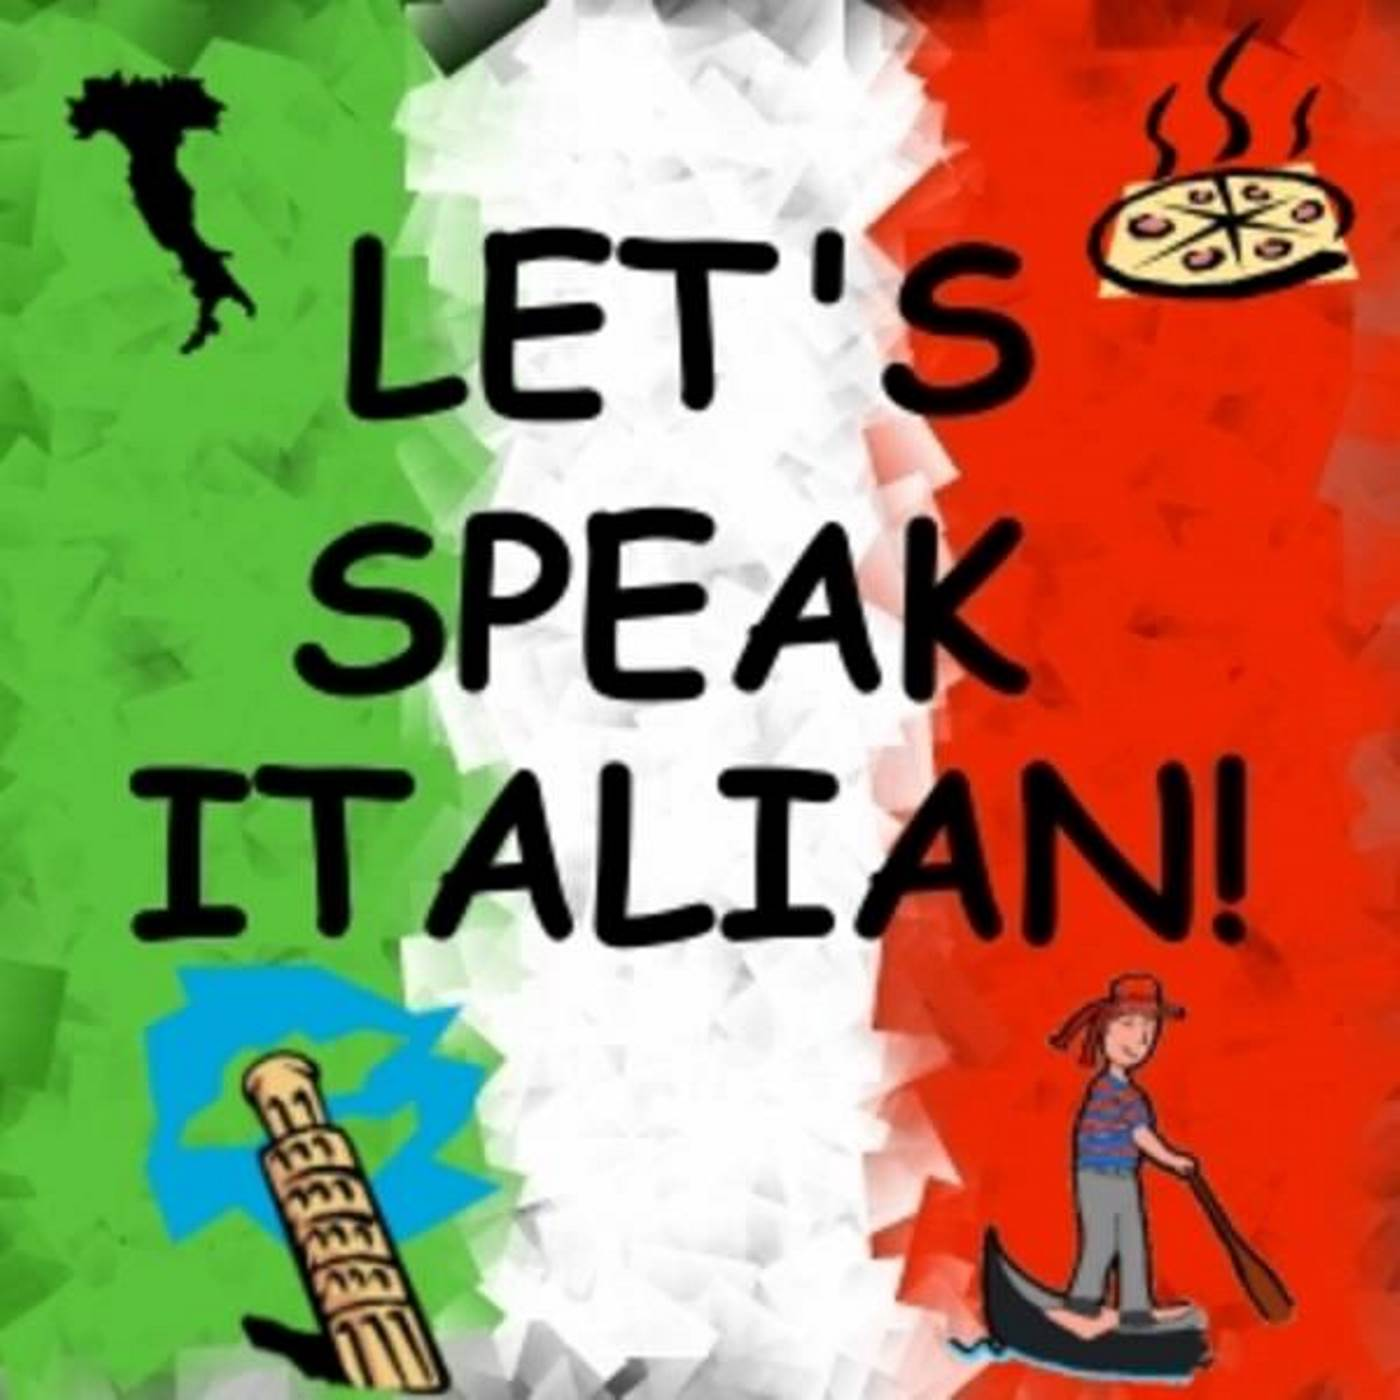 English In Italian: Let's Speak Italian! (podcast